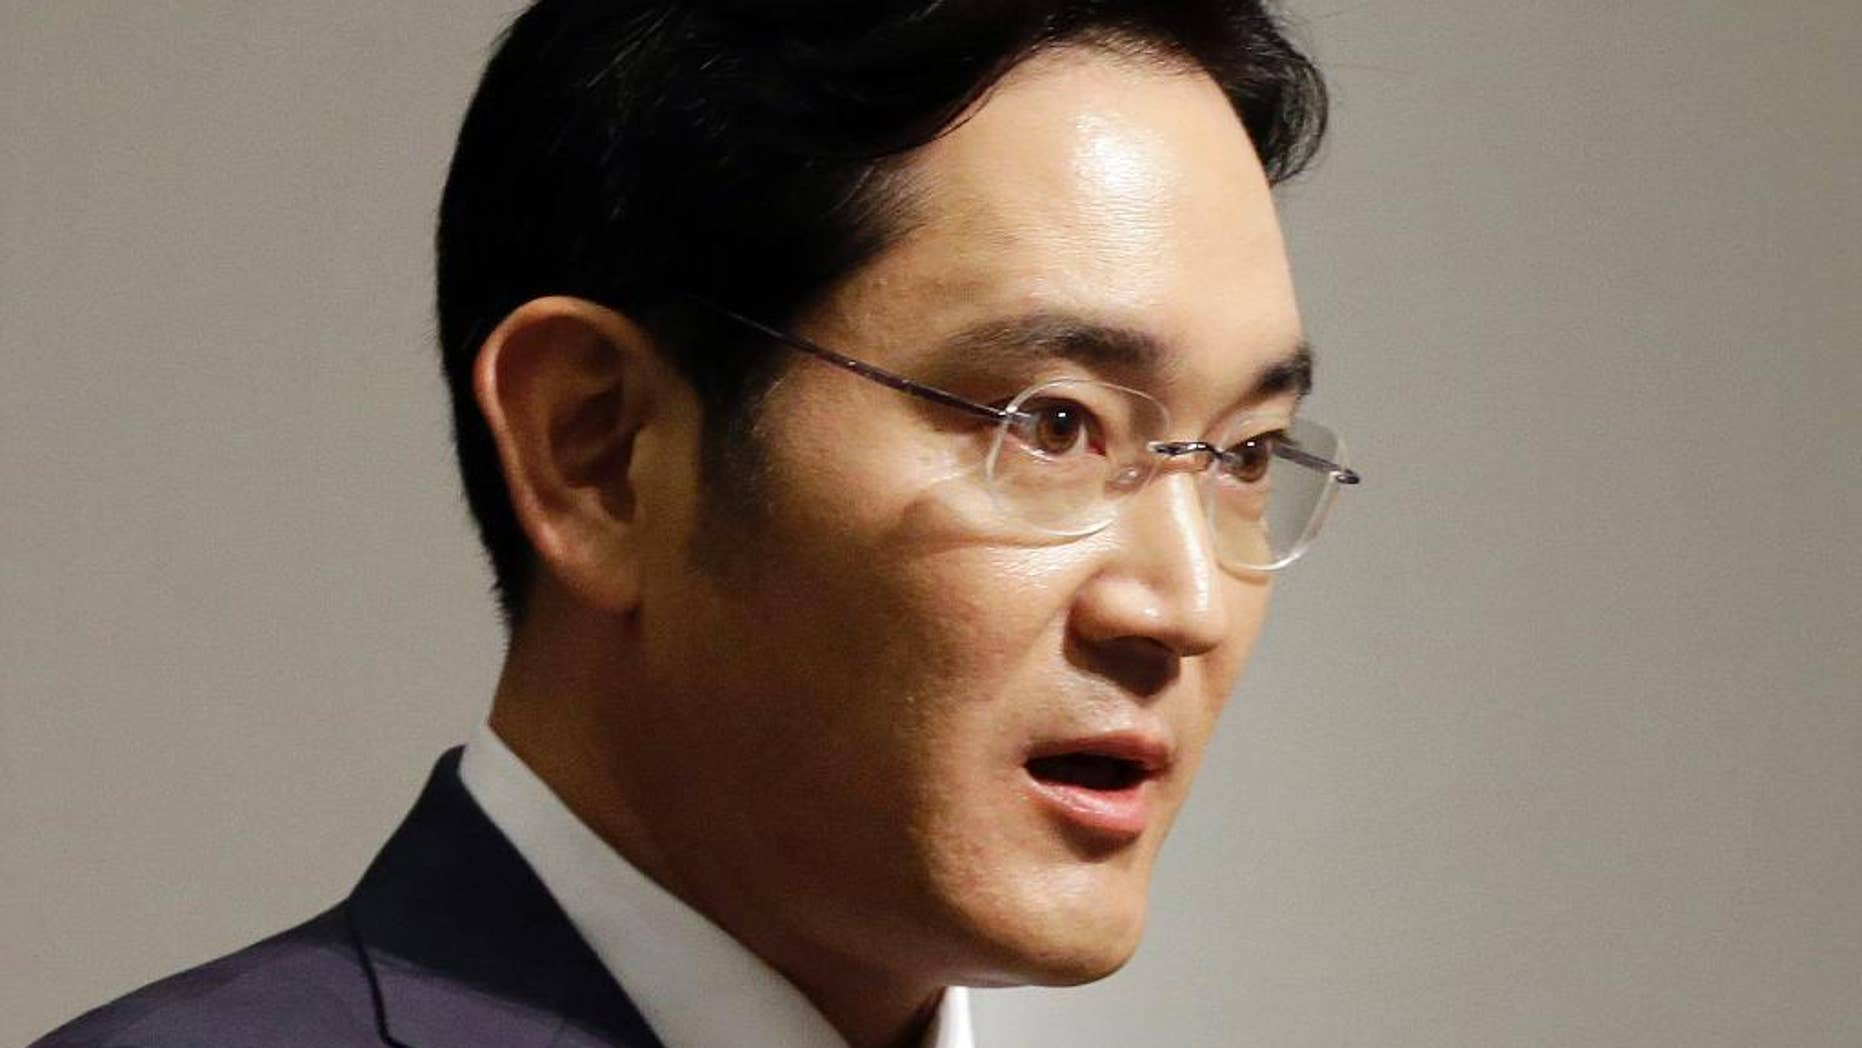 FILE - In this June 23, 2015, file photo, Lee Jae-yong, vice chairman of Samsung Electronics Co., speaks during a press conference at the company's headquarters in Seoul, South Korea. Lee, the only son of its ailing chairman, was nominated Monday, Sept. 12, 2016, to join its board of directors. The announcement comes as the South Korean company grapples with an unprecedented smartphone recall that has wiped out billions of dollars from its market value. (AP Photo/Ahn Young-joon, File)